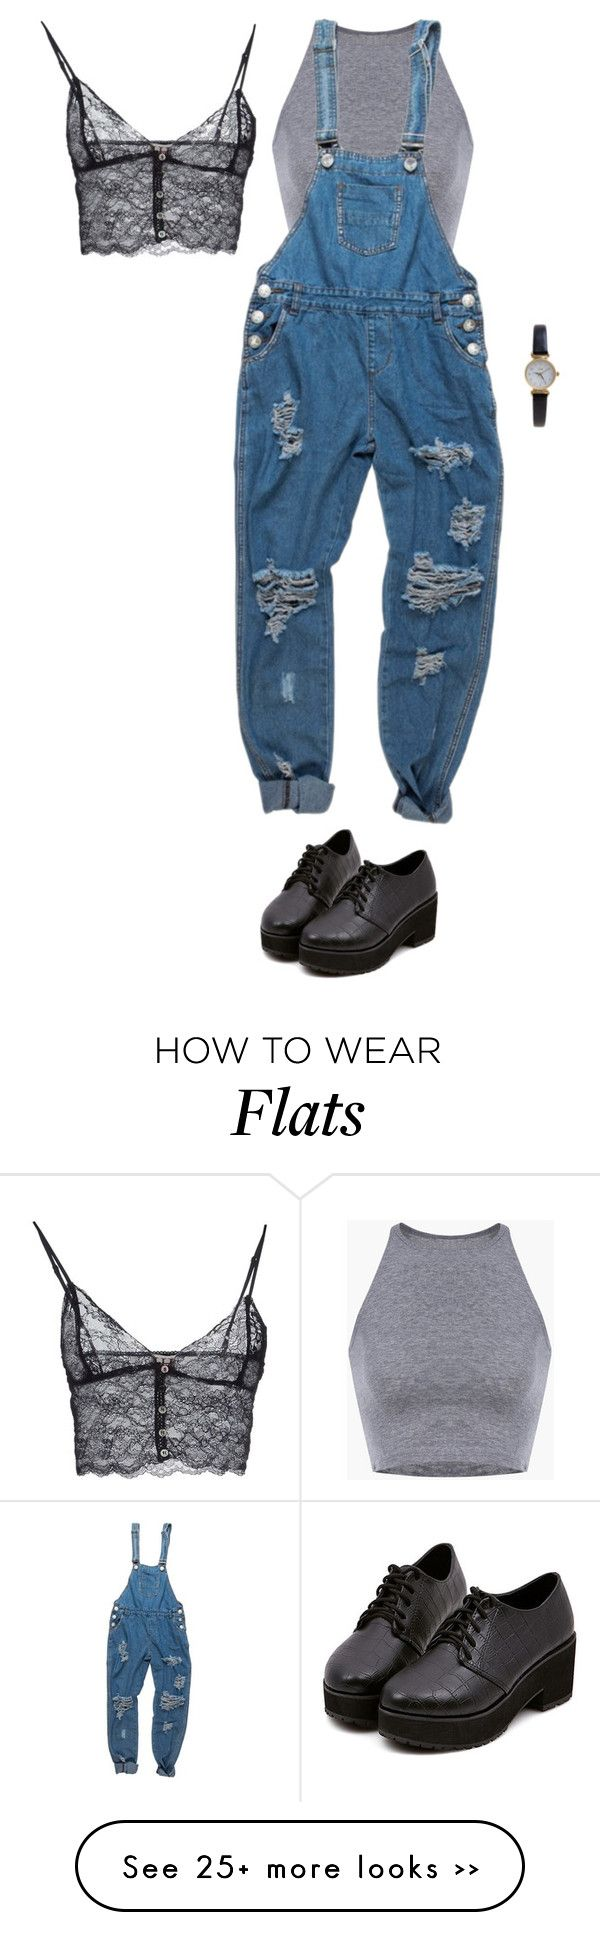 """Untitled #4987"" by dreamer-in-paris on Polyvore featuring Haute Hippie and Limit"